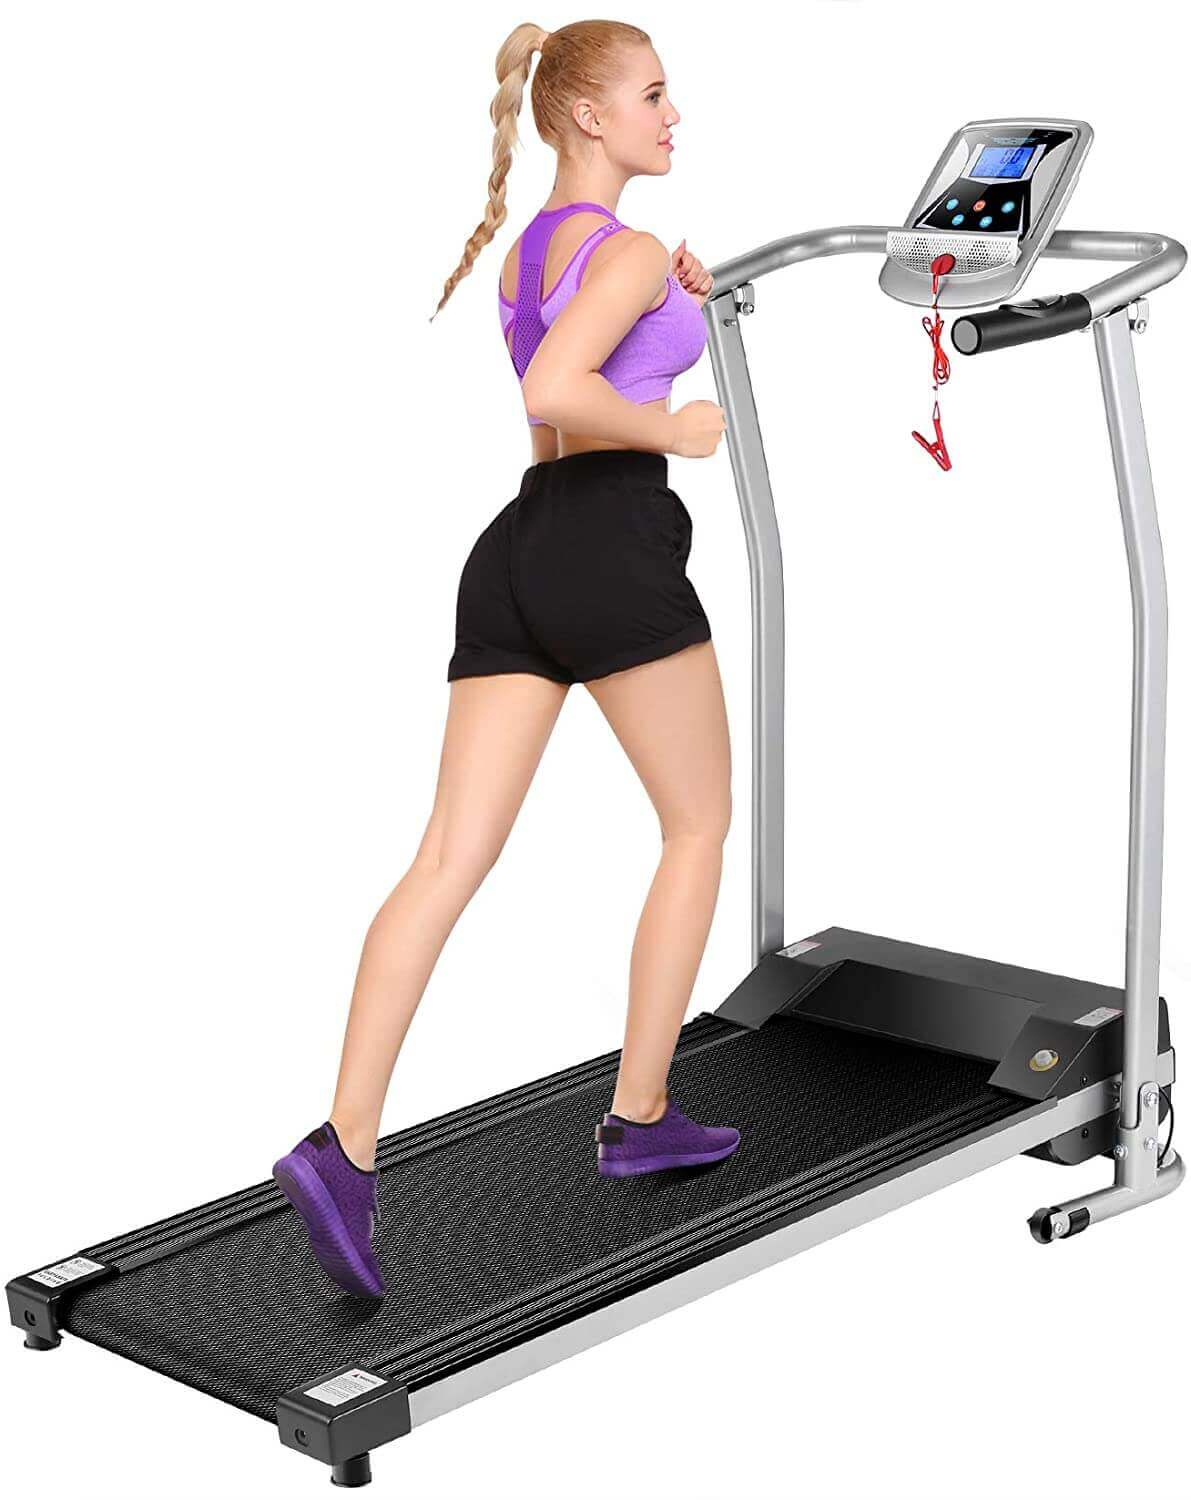 Mauccau Folding Treadmill with LCD Display Exercise Machine - for Home